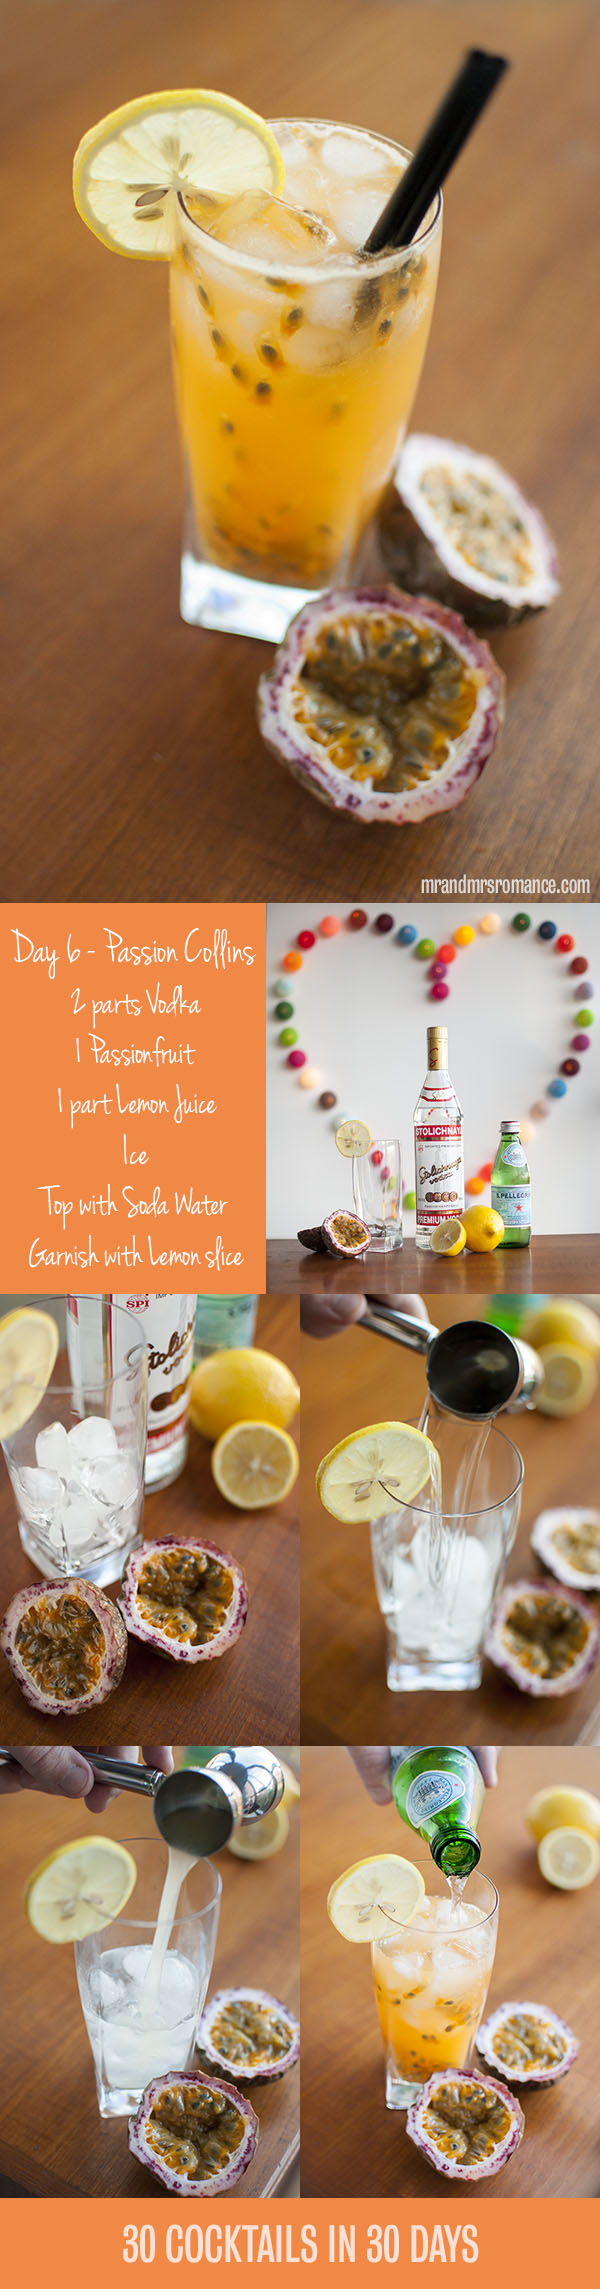 Mr and Mrs Romance - Day 6 - Passion Collins Cocktail Recipe